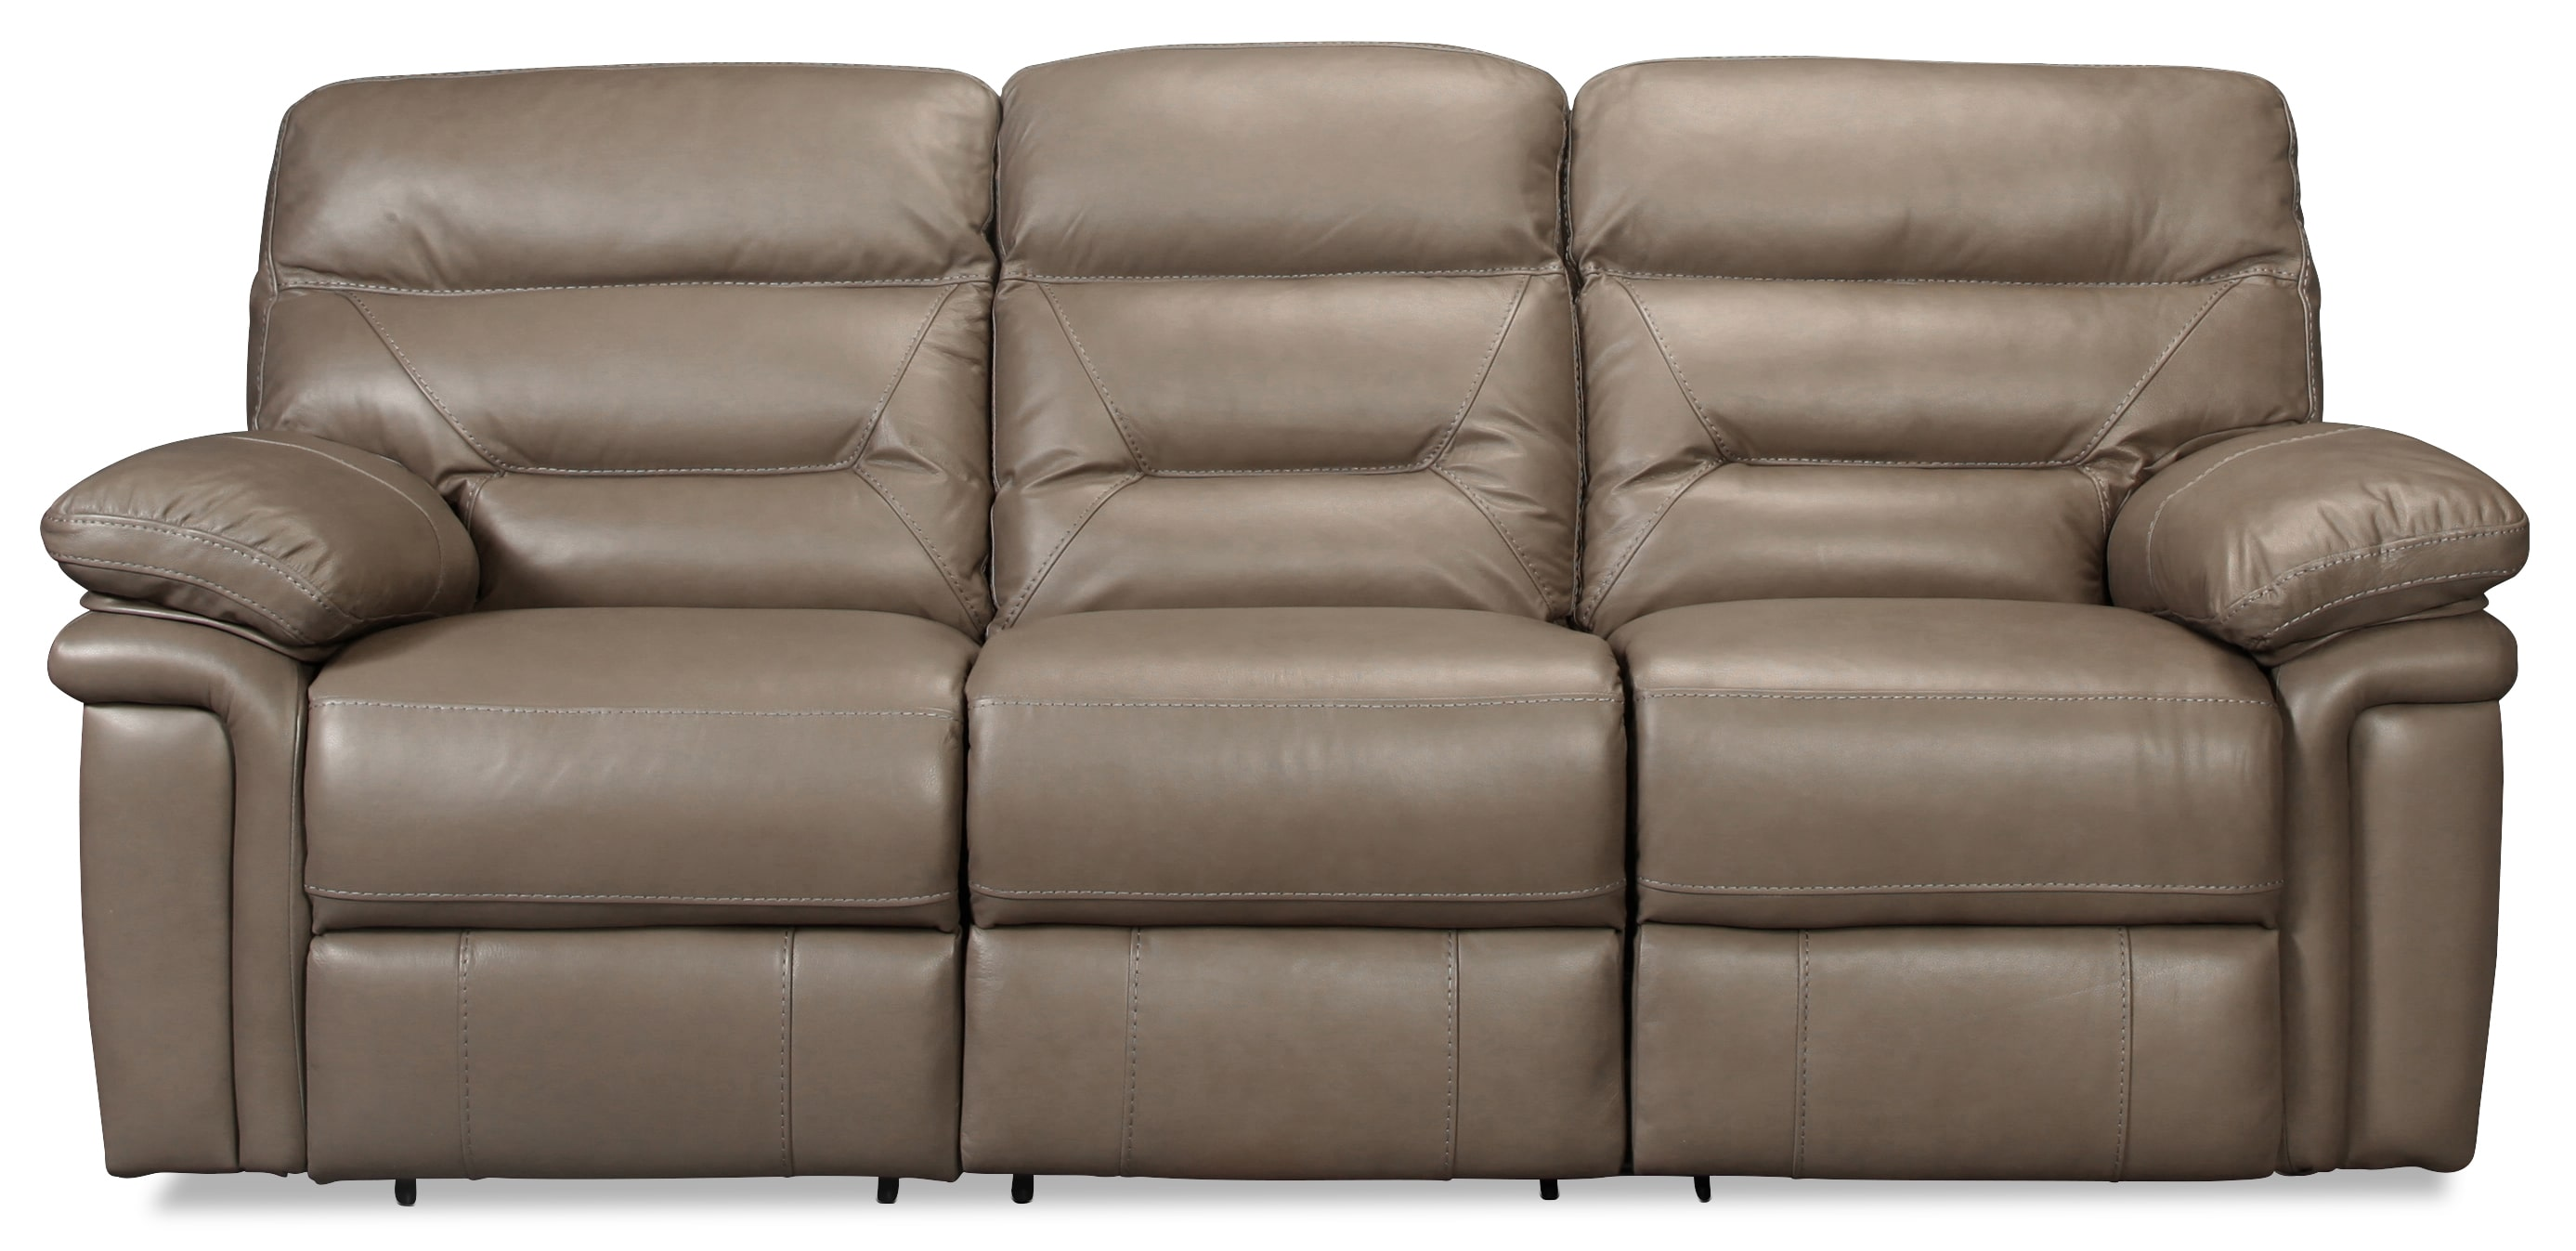 Piper Power Reclining Sofa